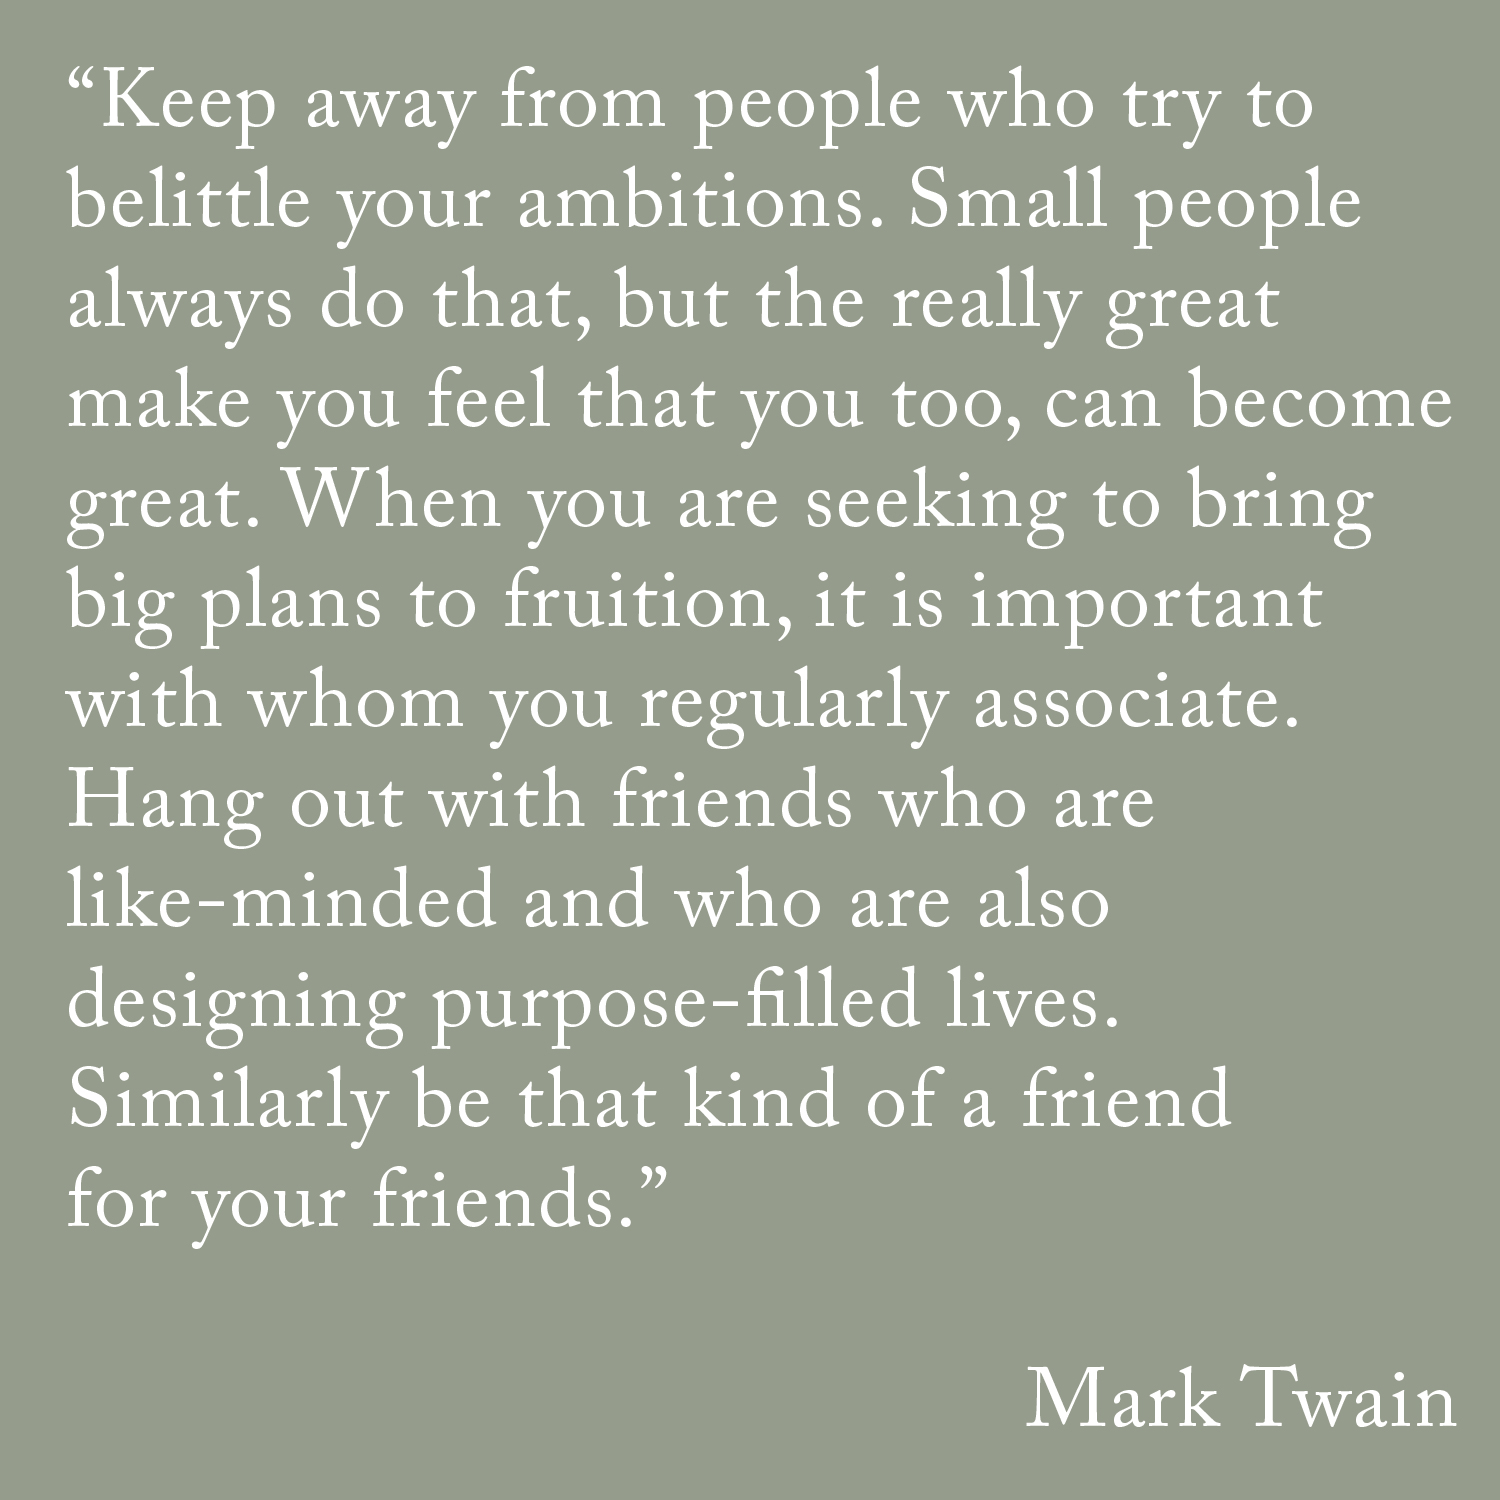 Good Quotes About Love And Friendship Positive Influences Mark Twain Quote  Kale University